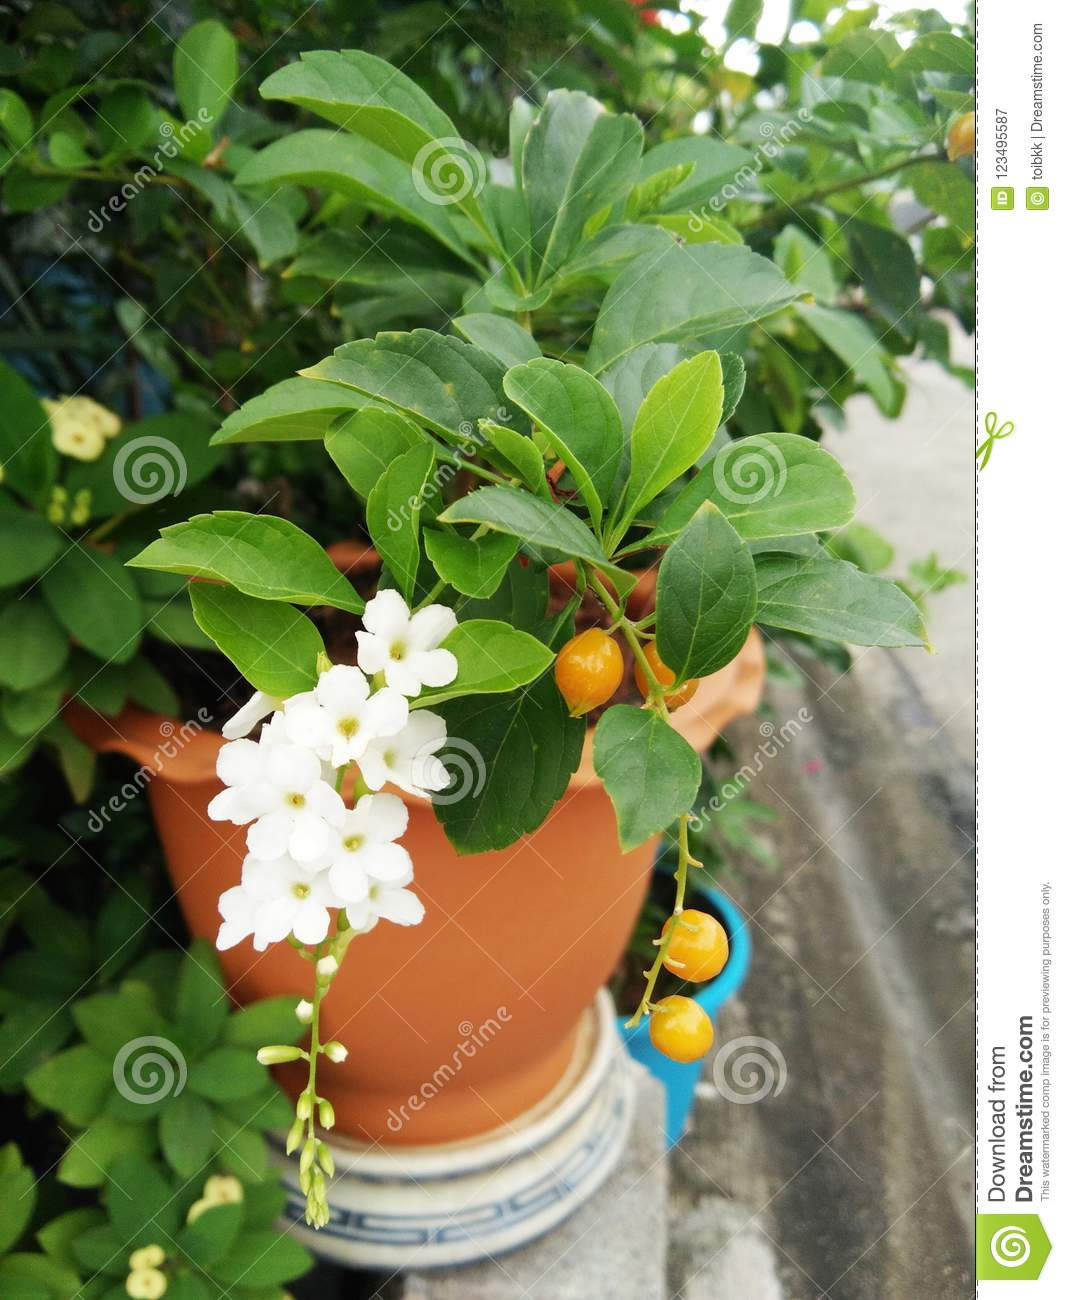 White flowers of duranta erecta or golden dewdrop or skyflower tree blossom white flowers of duranta erecta or golden dewdrop or skyflower tree yellow fruits drop of candle in thai name on orange pot and blurred background mightylinksfo